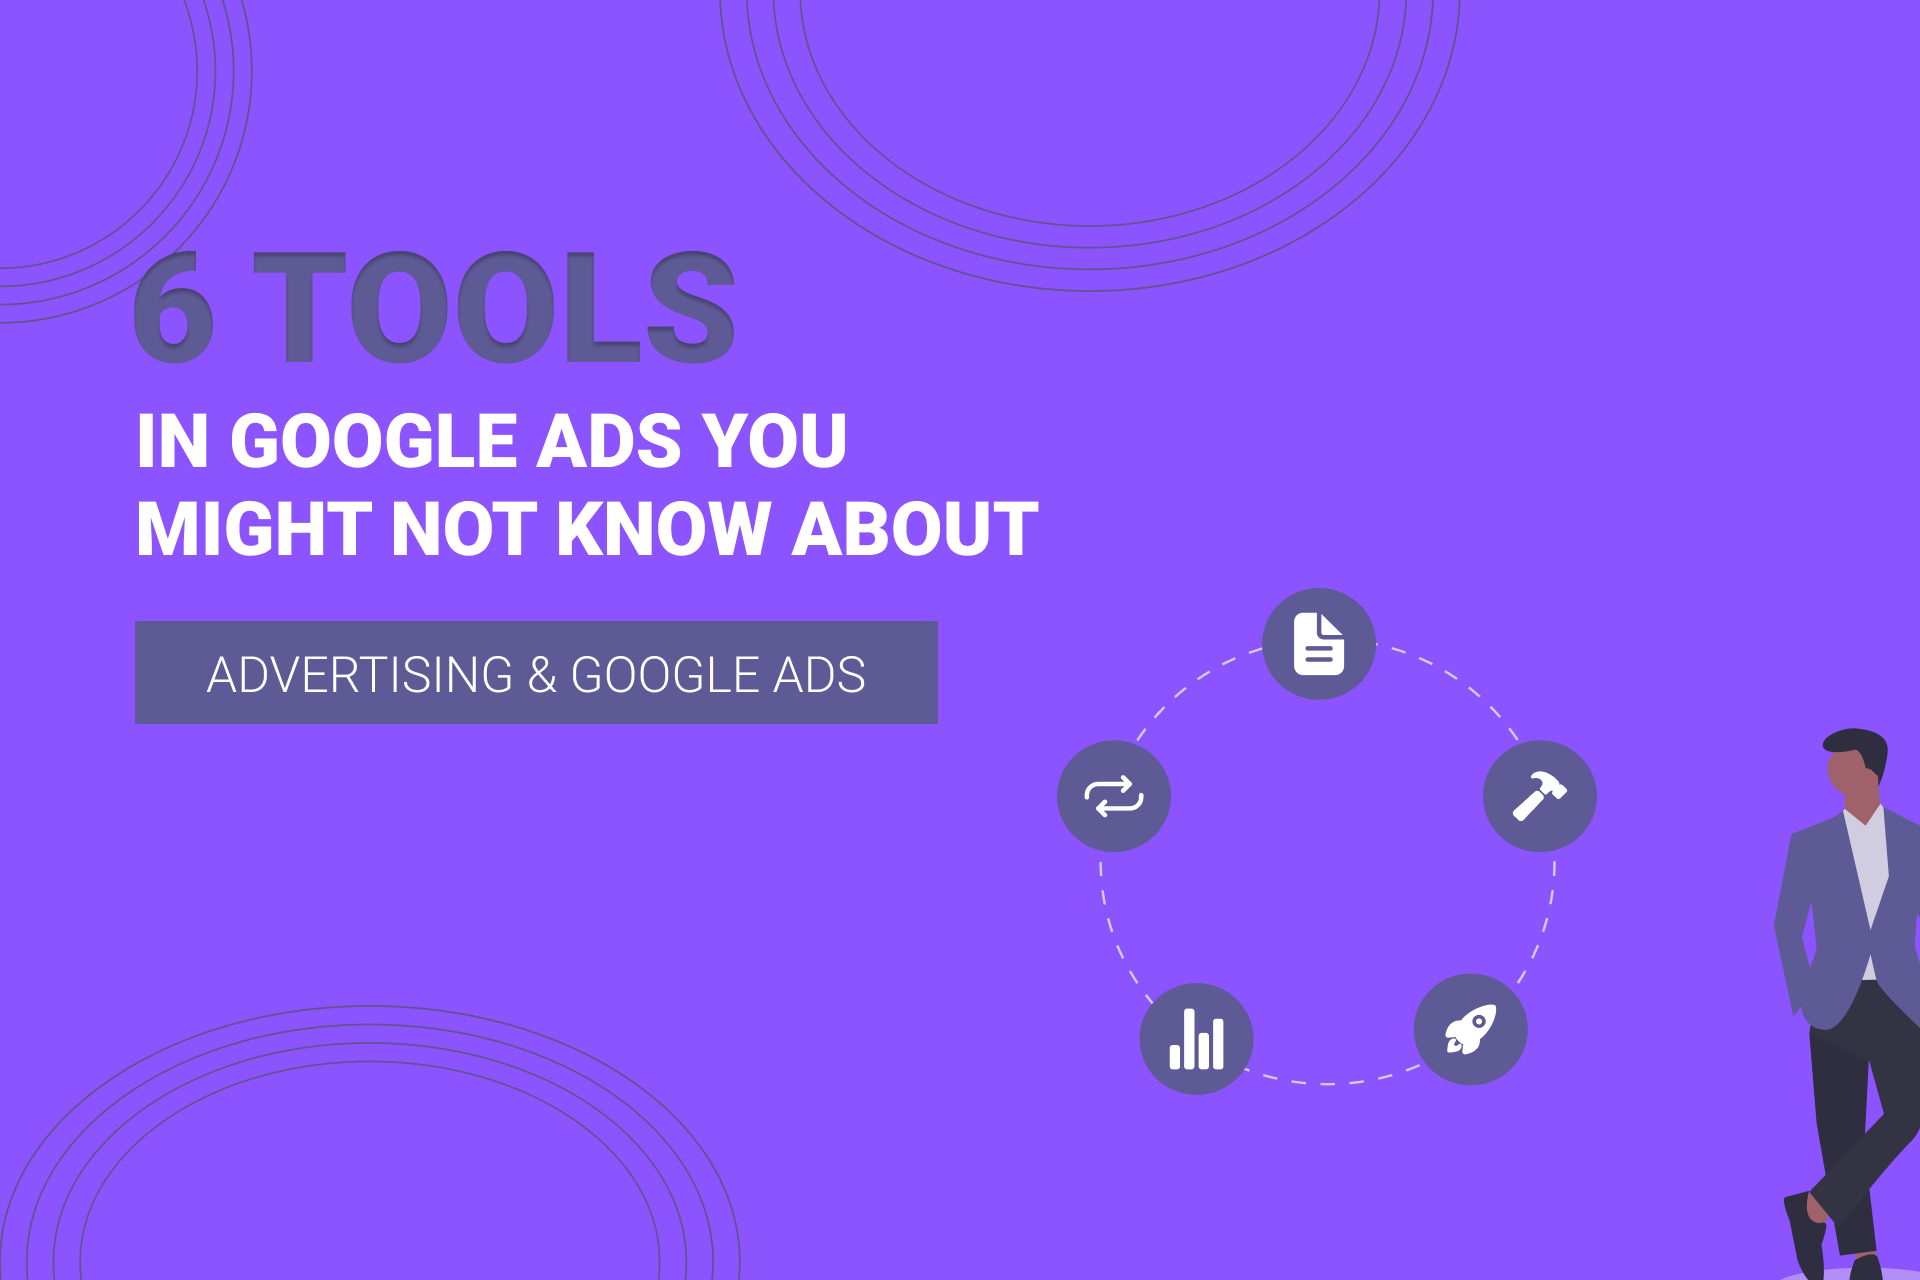 6 Tools and Features In Google Ads You Might Not Know About